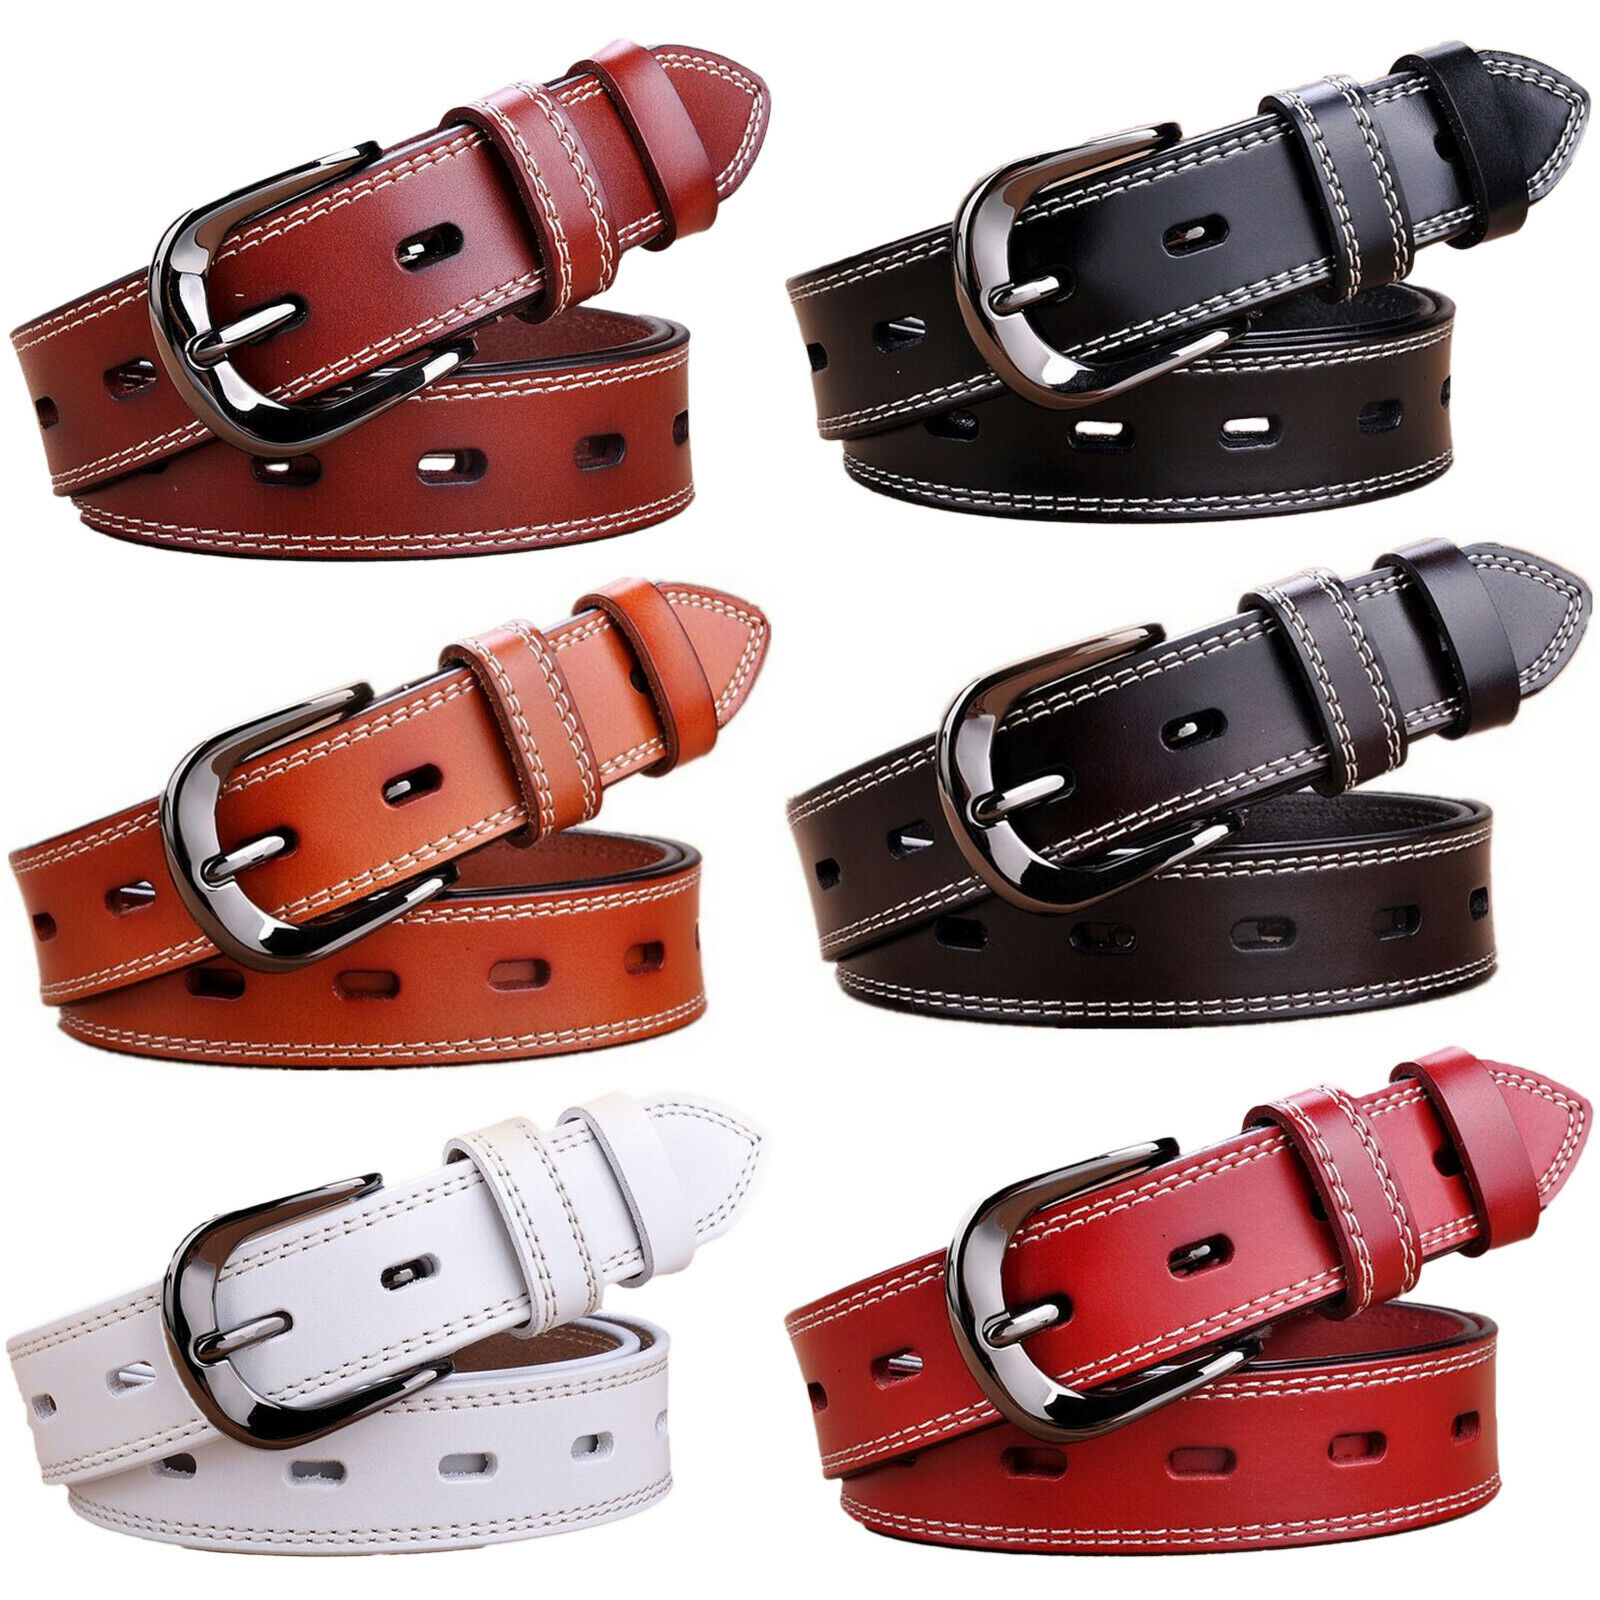 Women's Metal Buckle Handcrafted Double Stitched Genuine Leather Jean Belt Belts